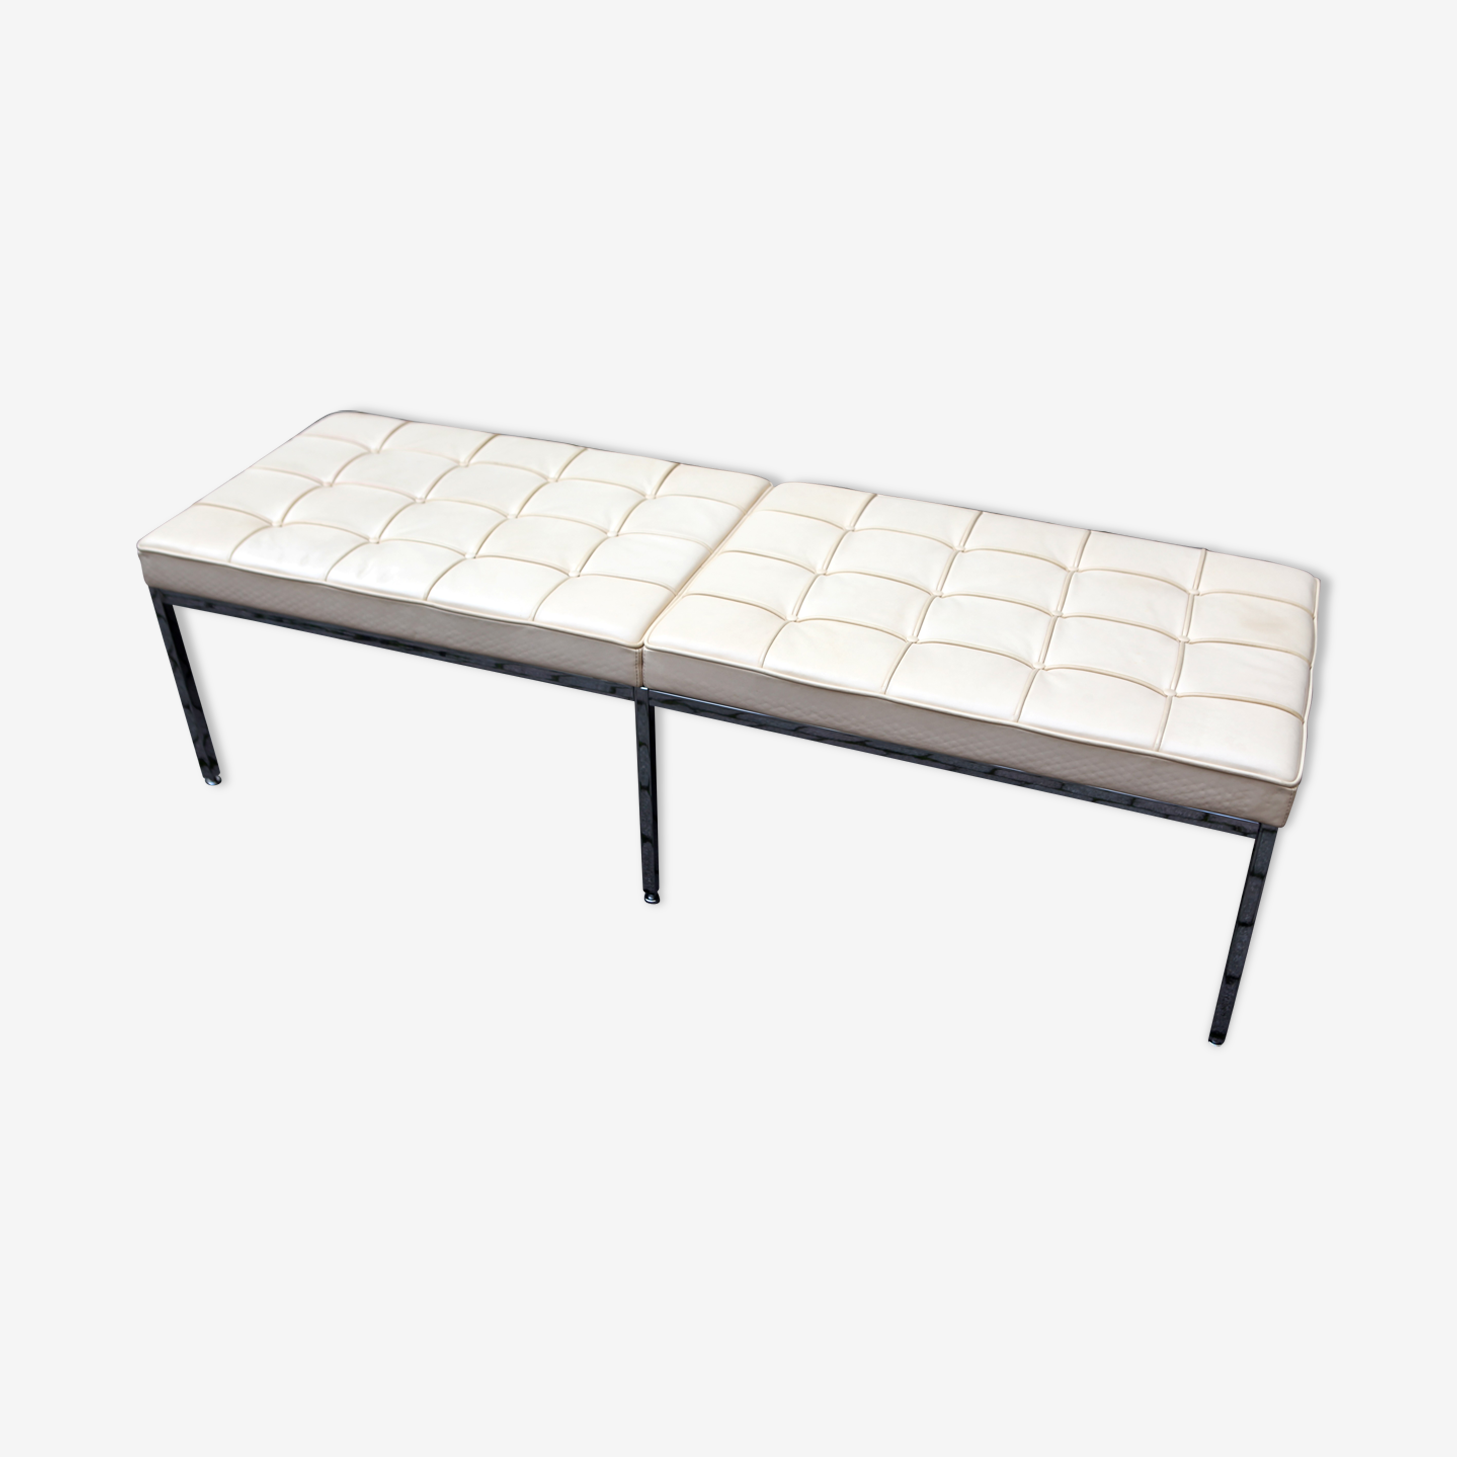 Bench by Florence Knoll